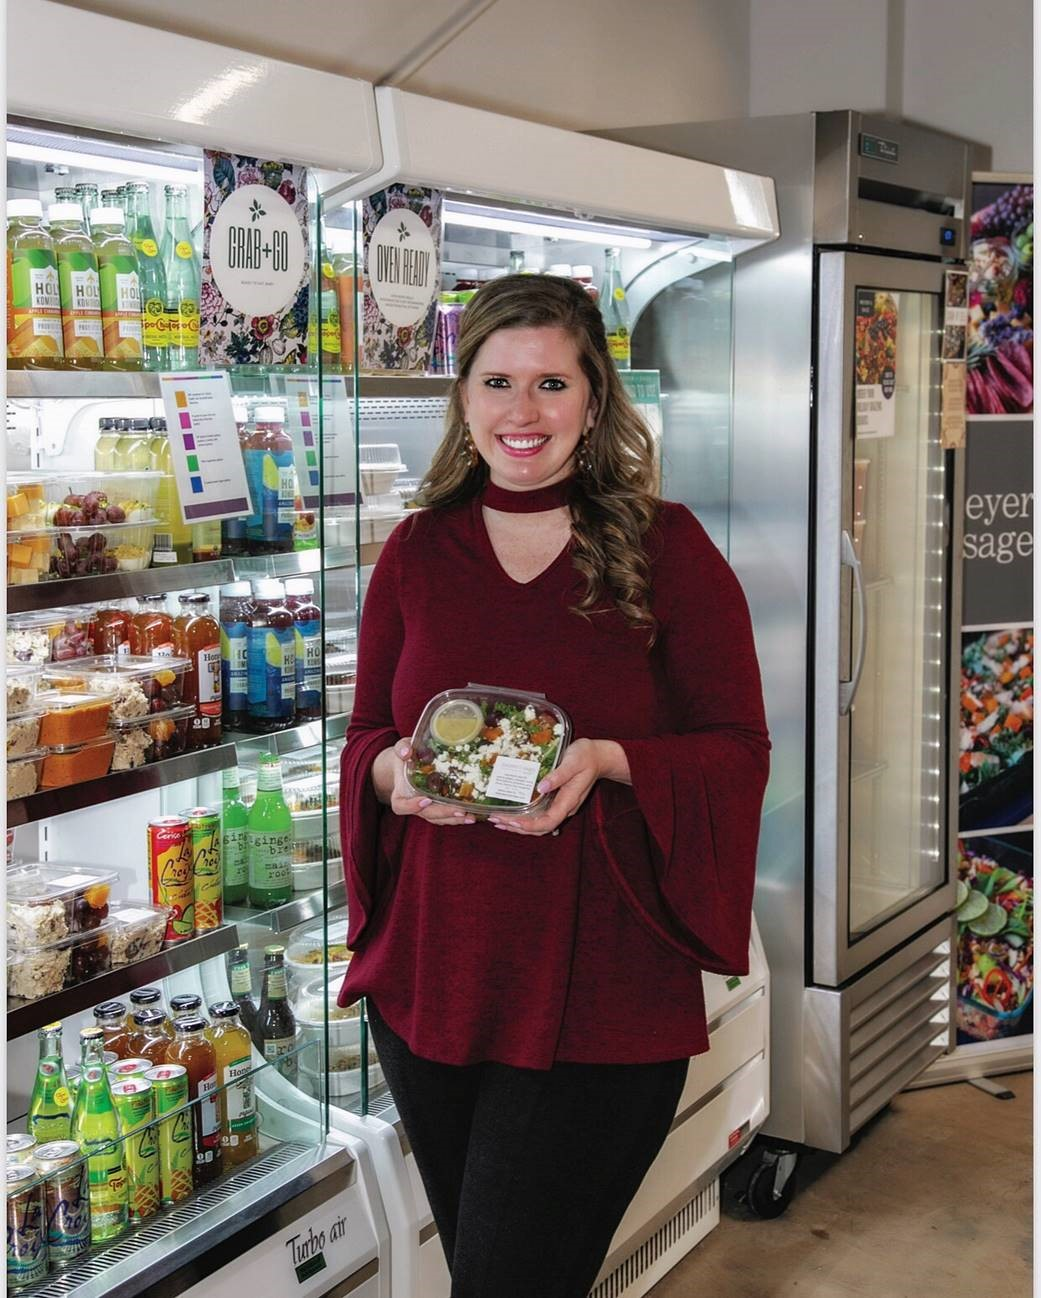 Callie standing in front of the grab'n'go section at Meyer and Sage